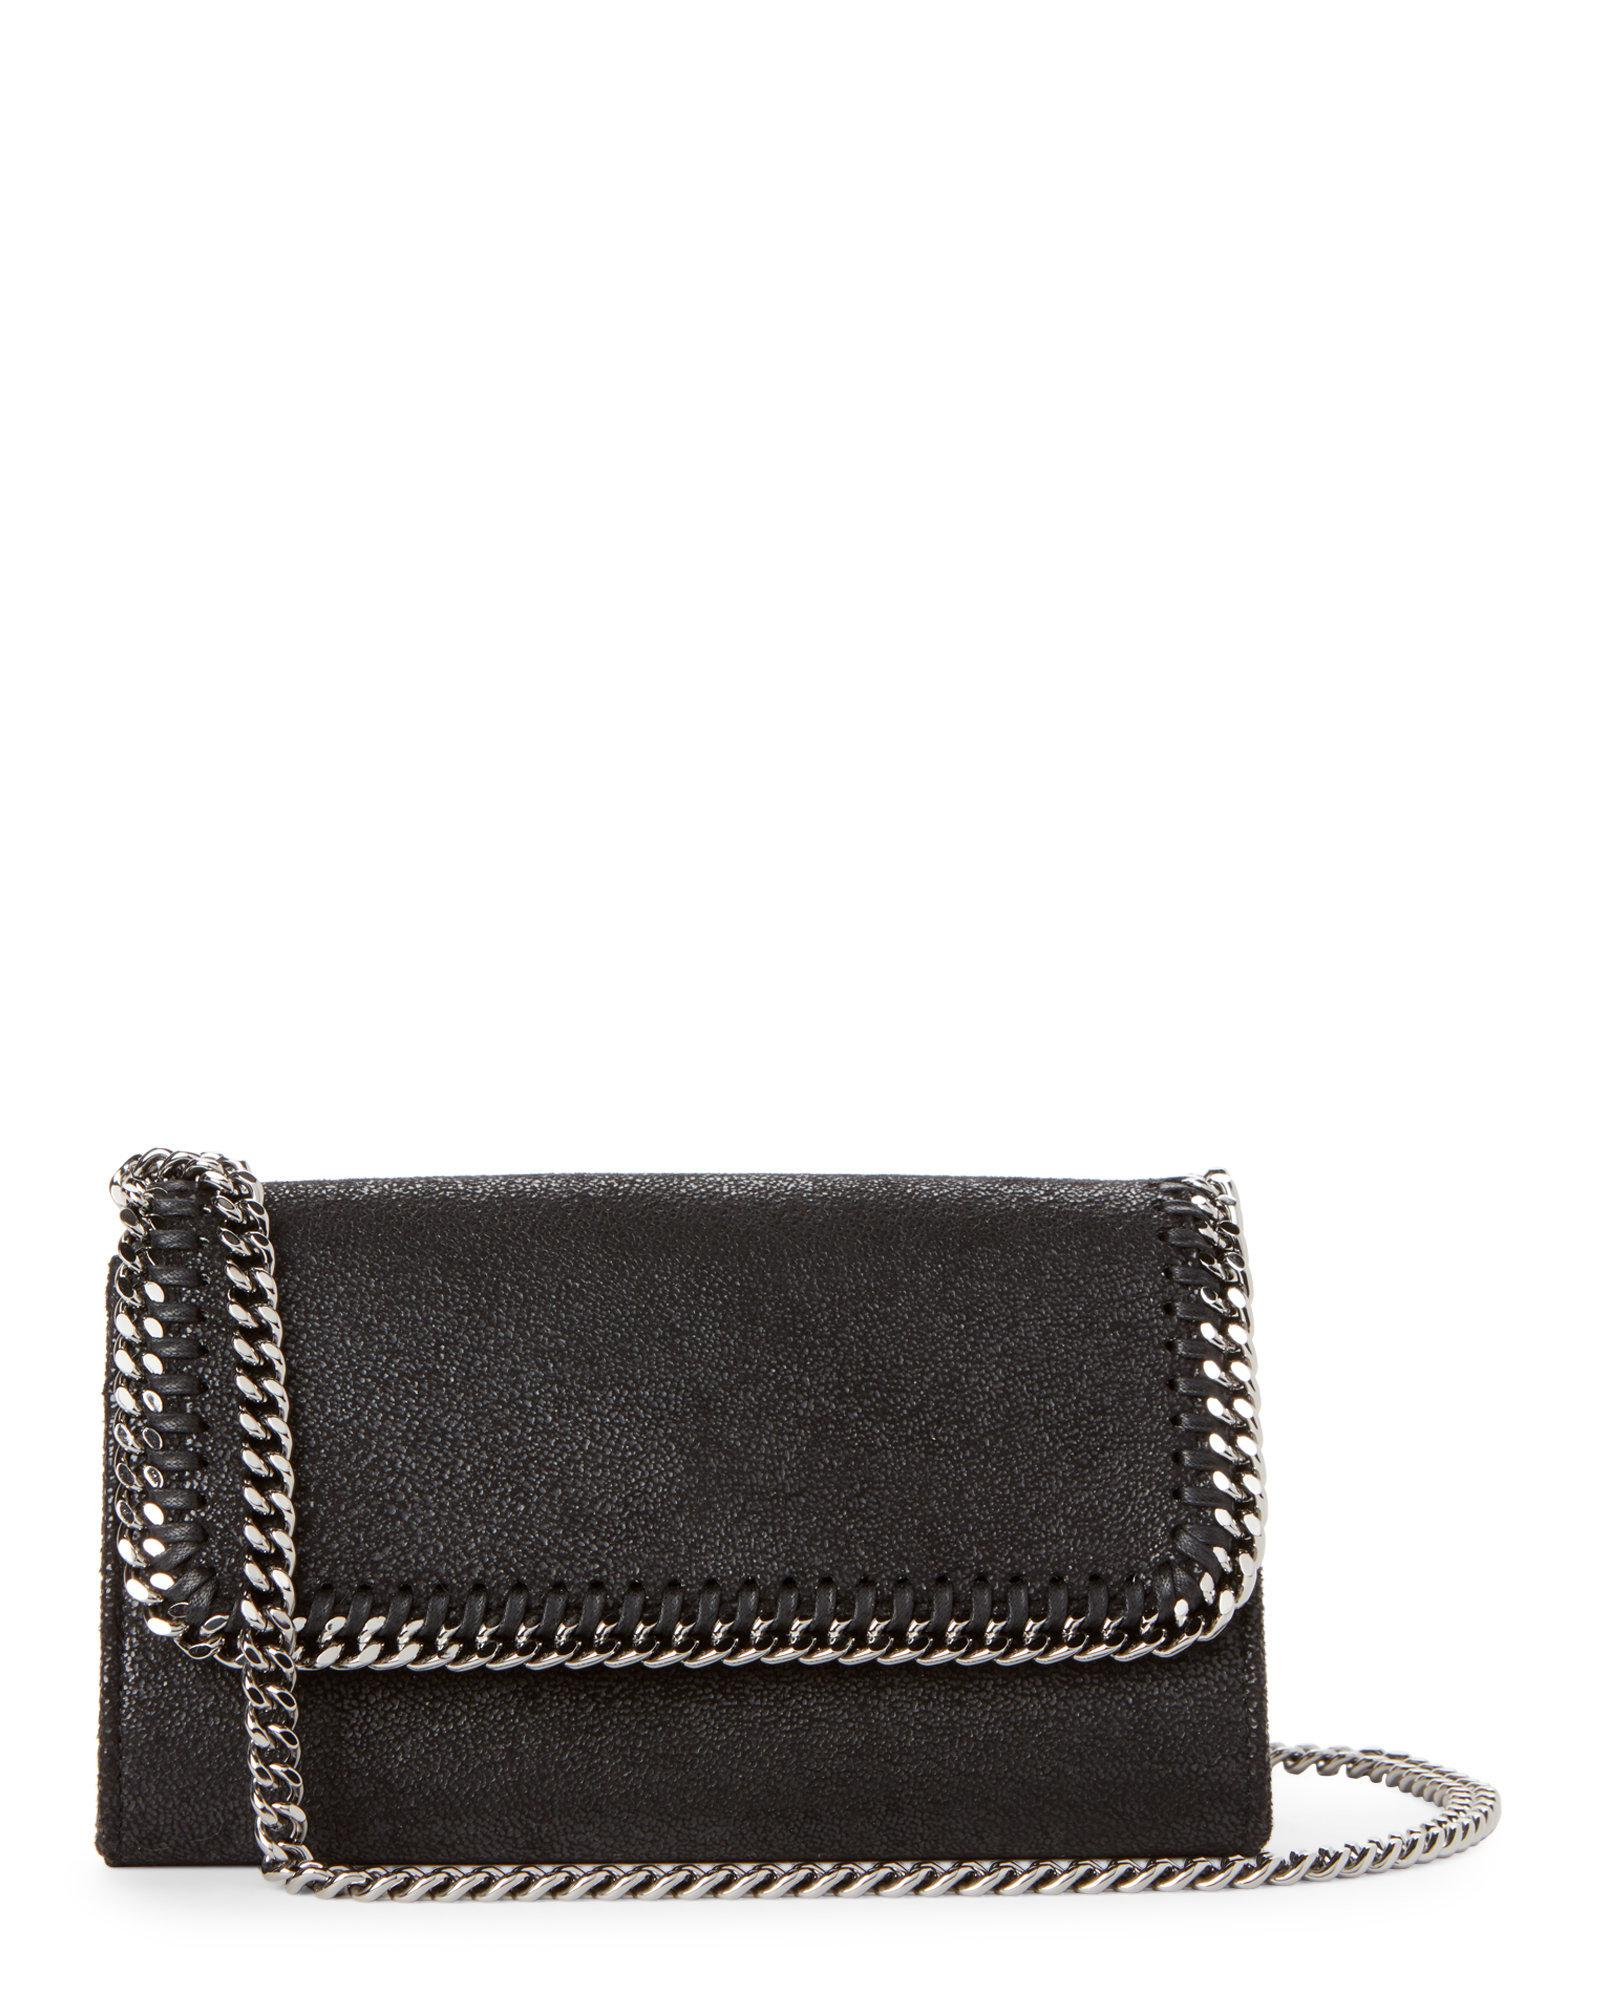 dce943375ff Lyst - Stella McCartney Black Falabella Shaggy Deer Chain Wallet in ...